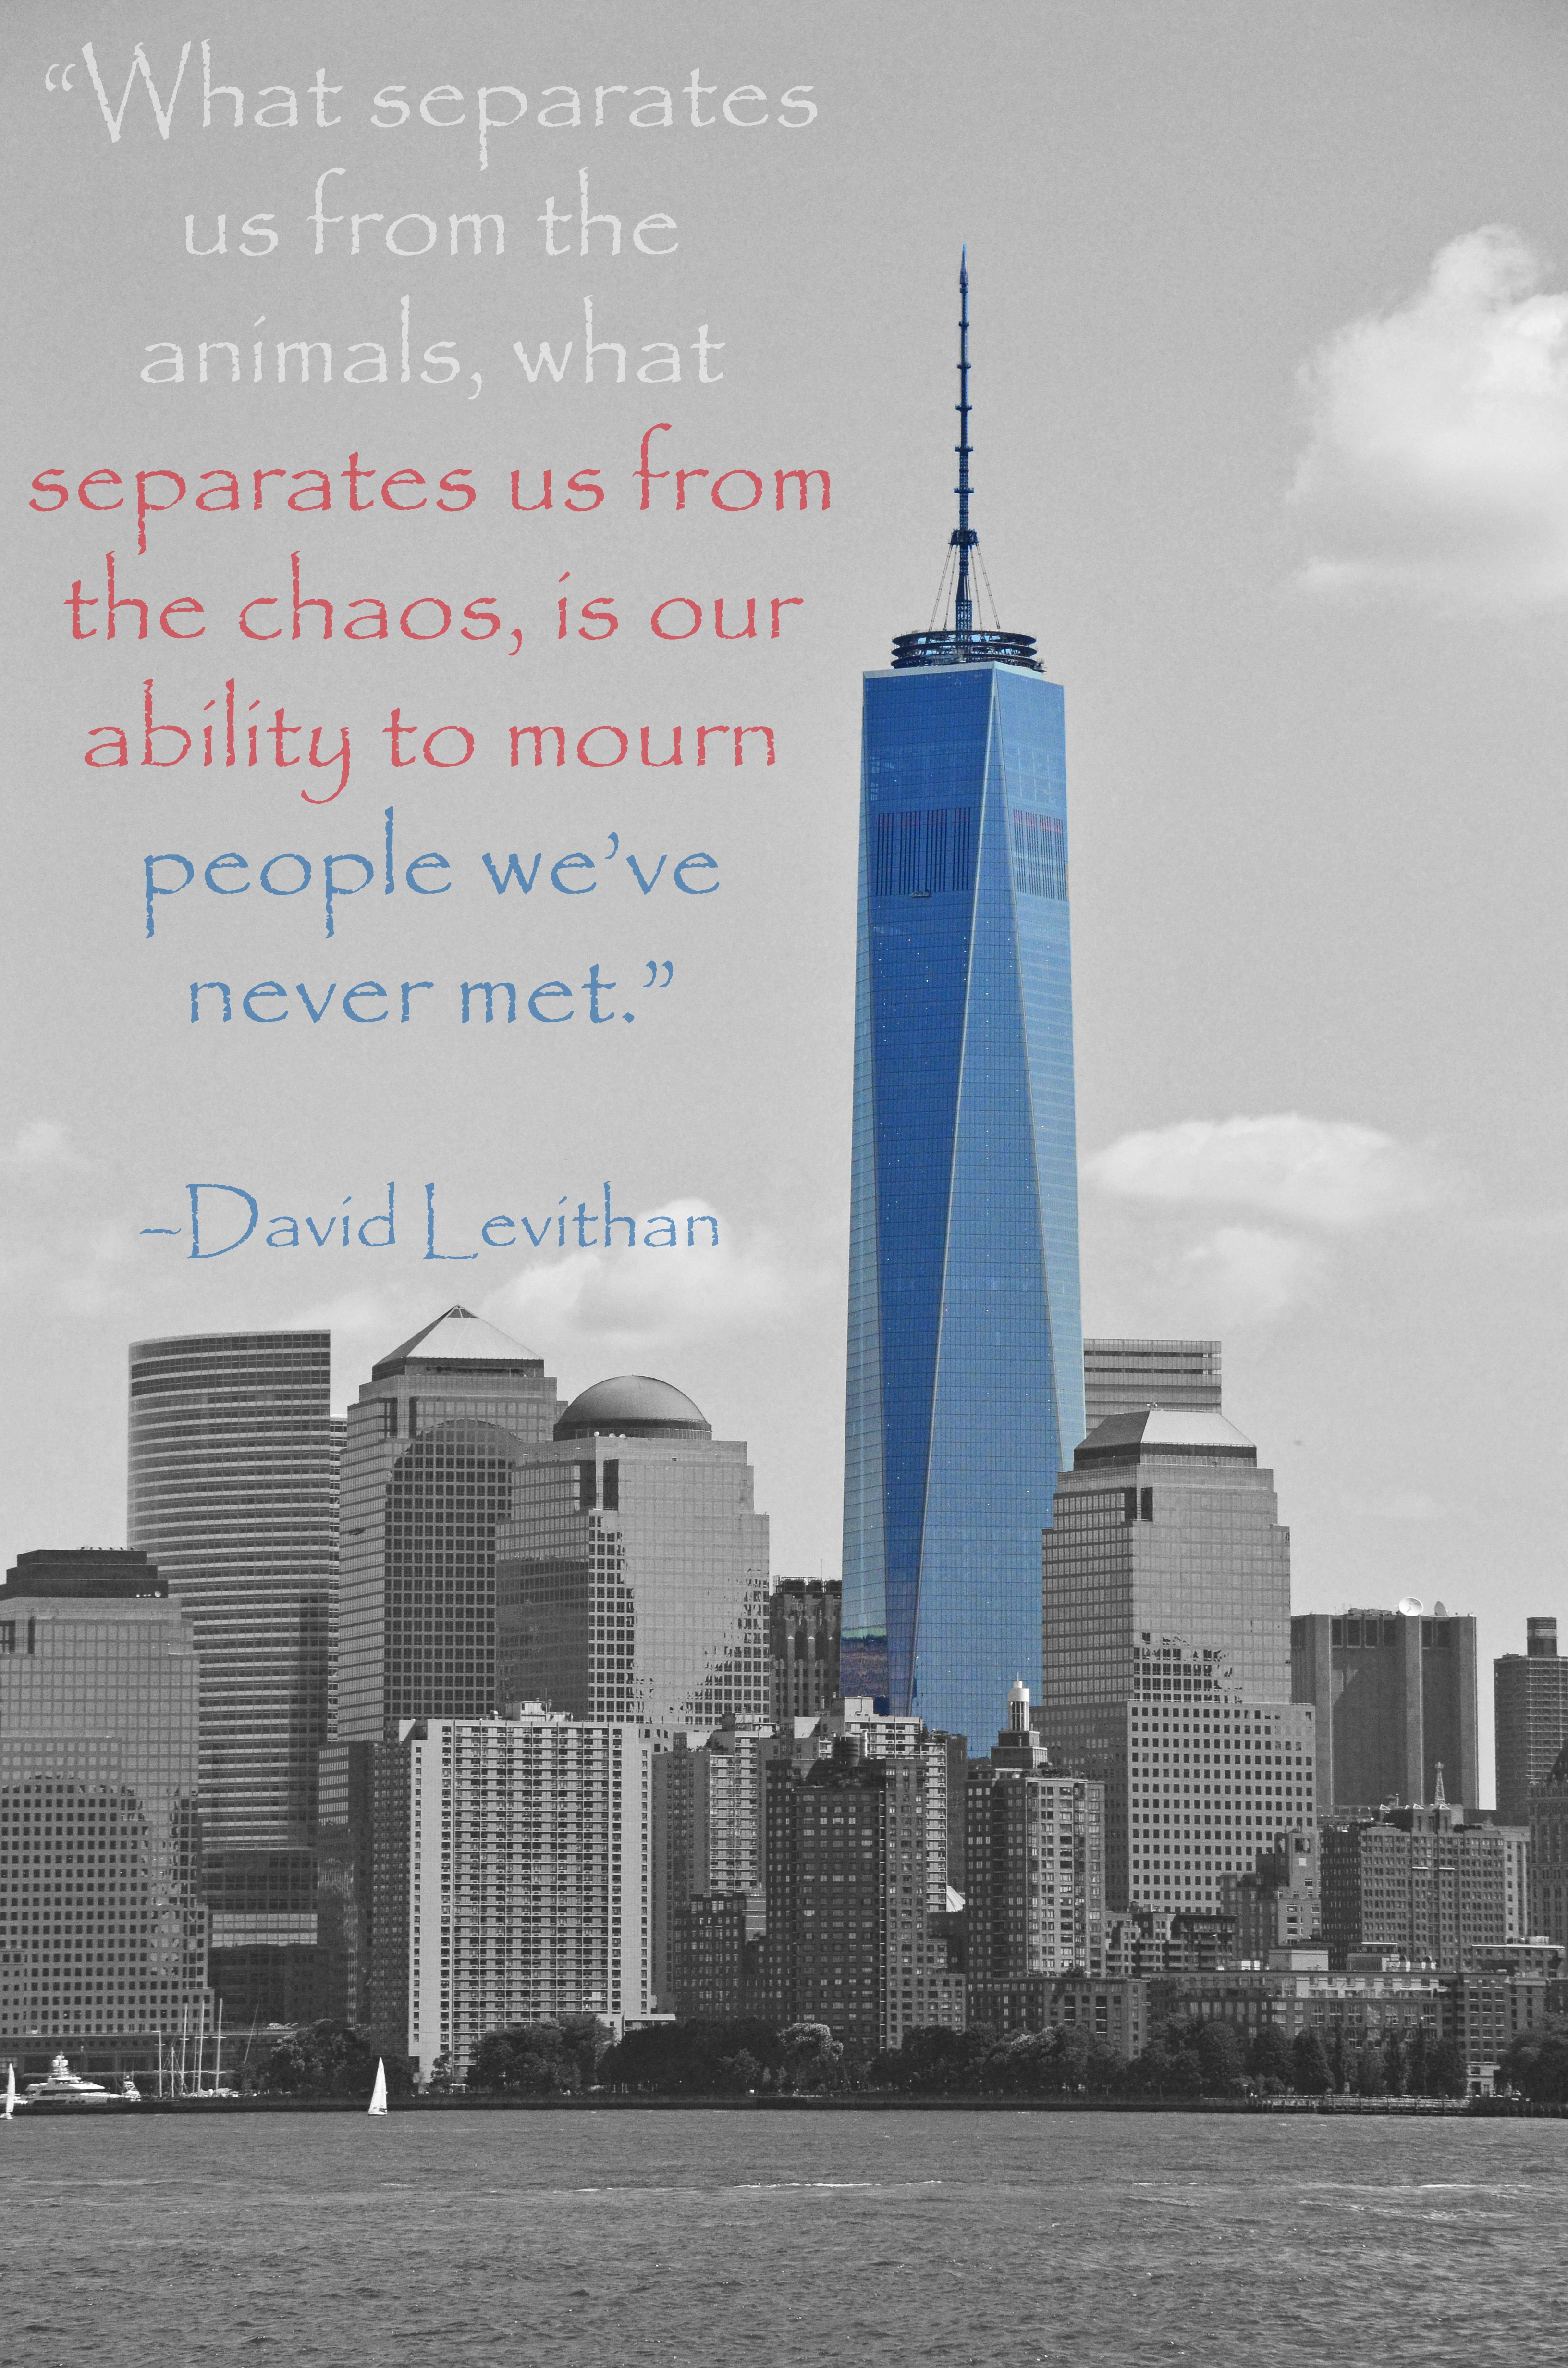 David Levithan 9 11 Quote With The Freedom Tower In Nyc The Freedom Tower Short Inspirational Quotes Quotes